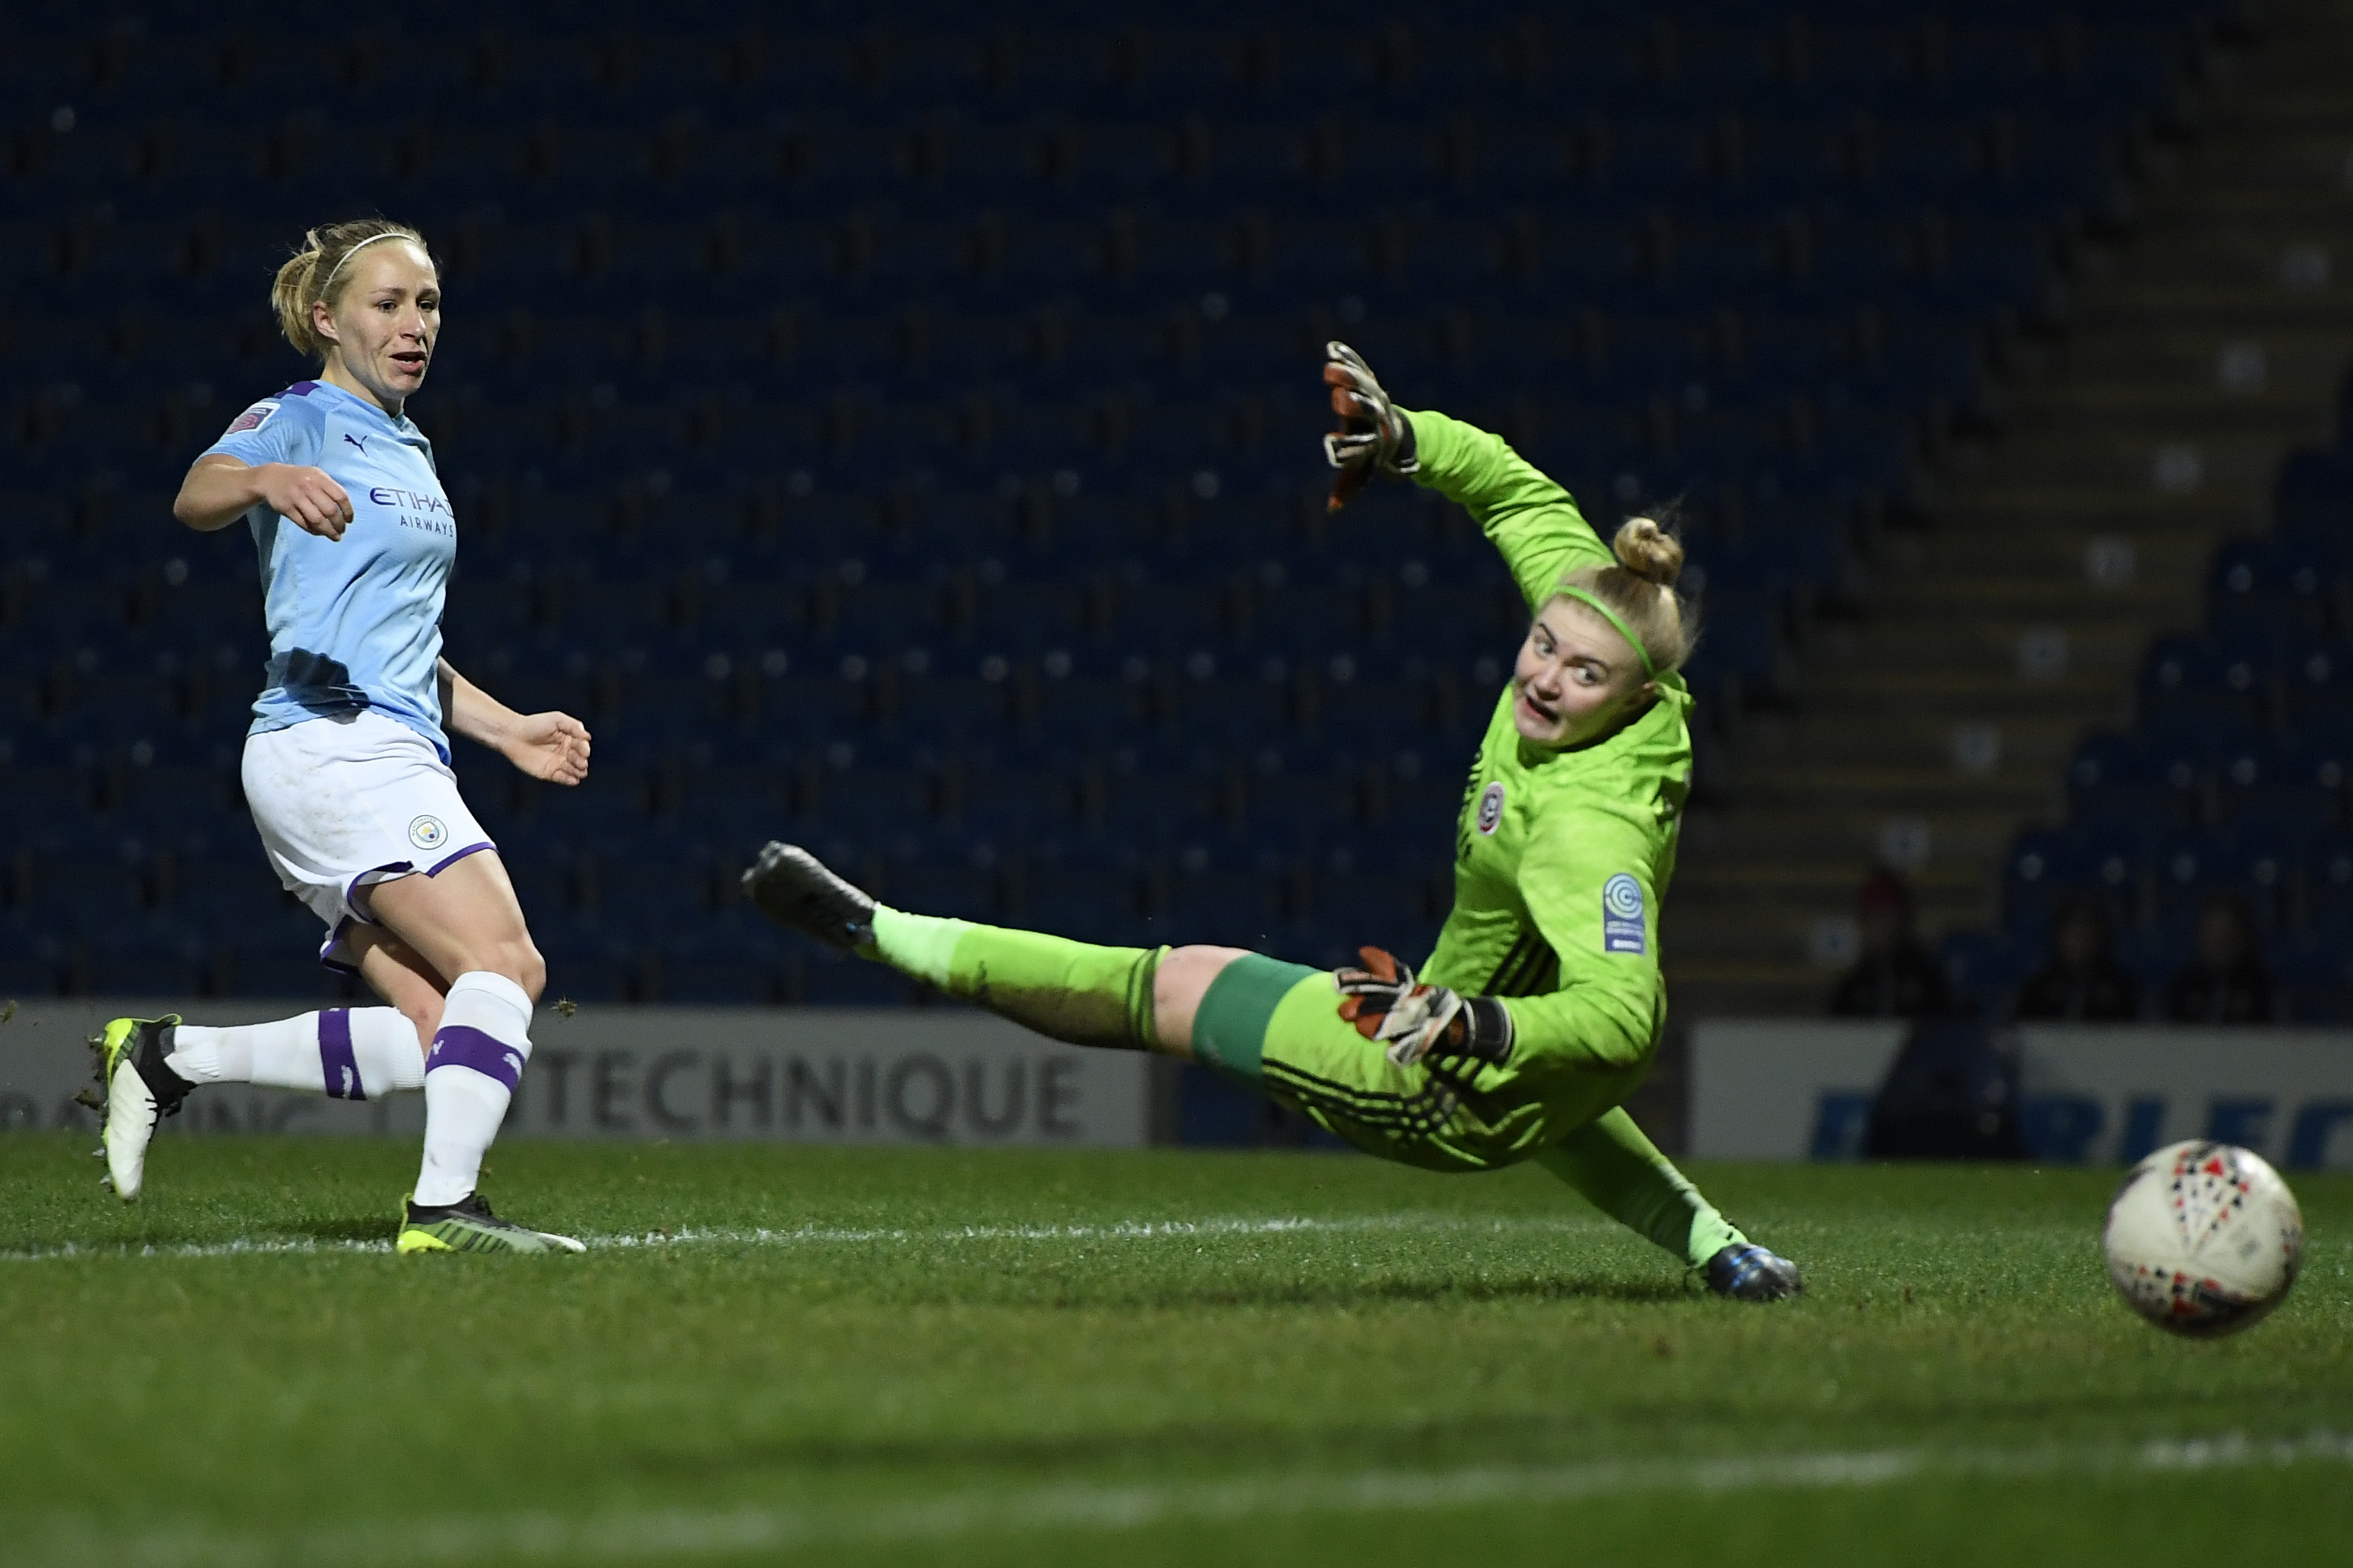 Sheffield United Women v Manchester City Women - FA Women's Continental League Cup: Quarter-Final